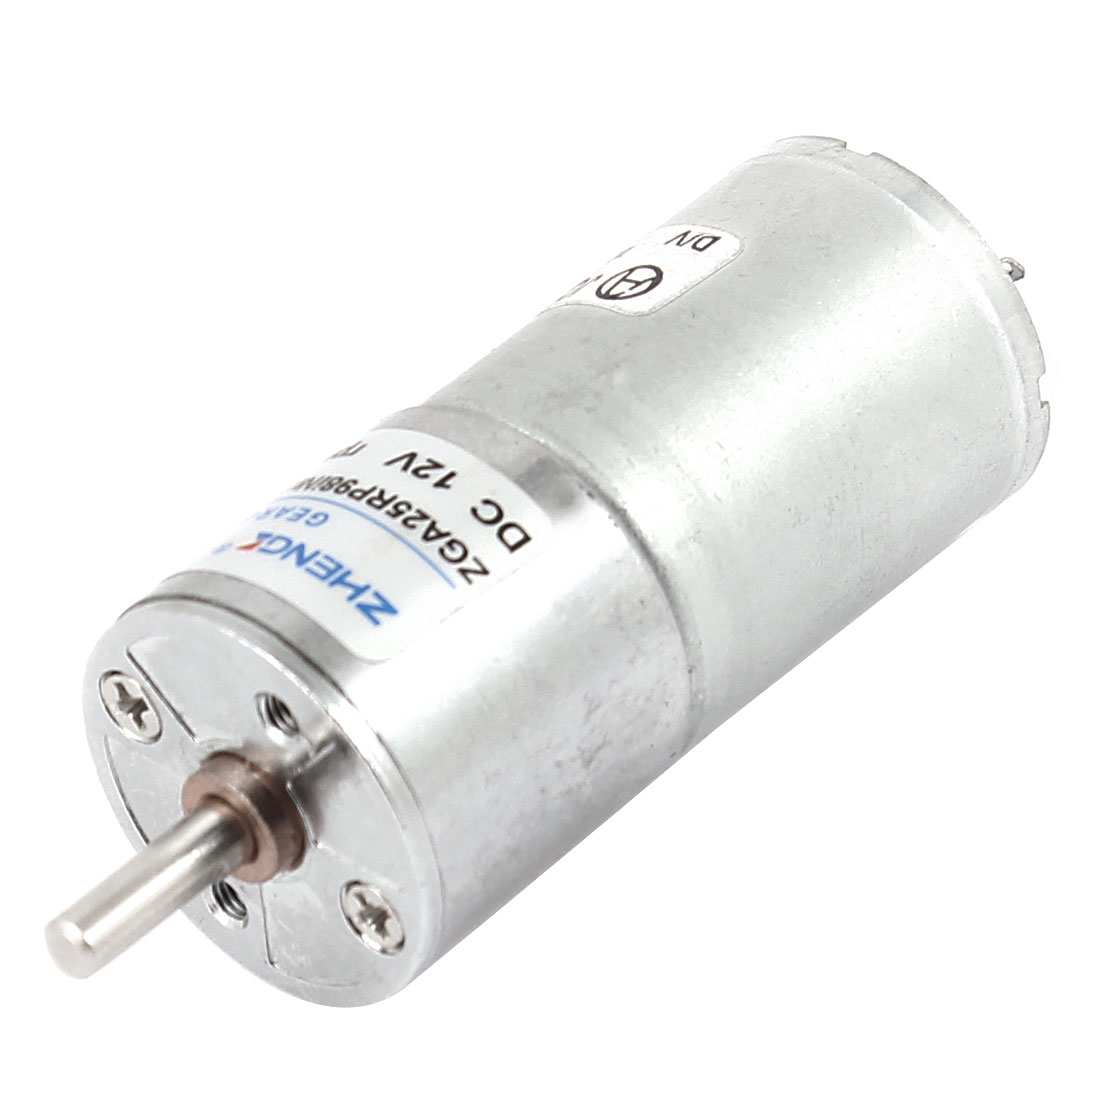 DC 12V 60RPM 4mm Shaft Dia Cylinder Magnetic Electric Geared Box Motor